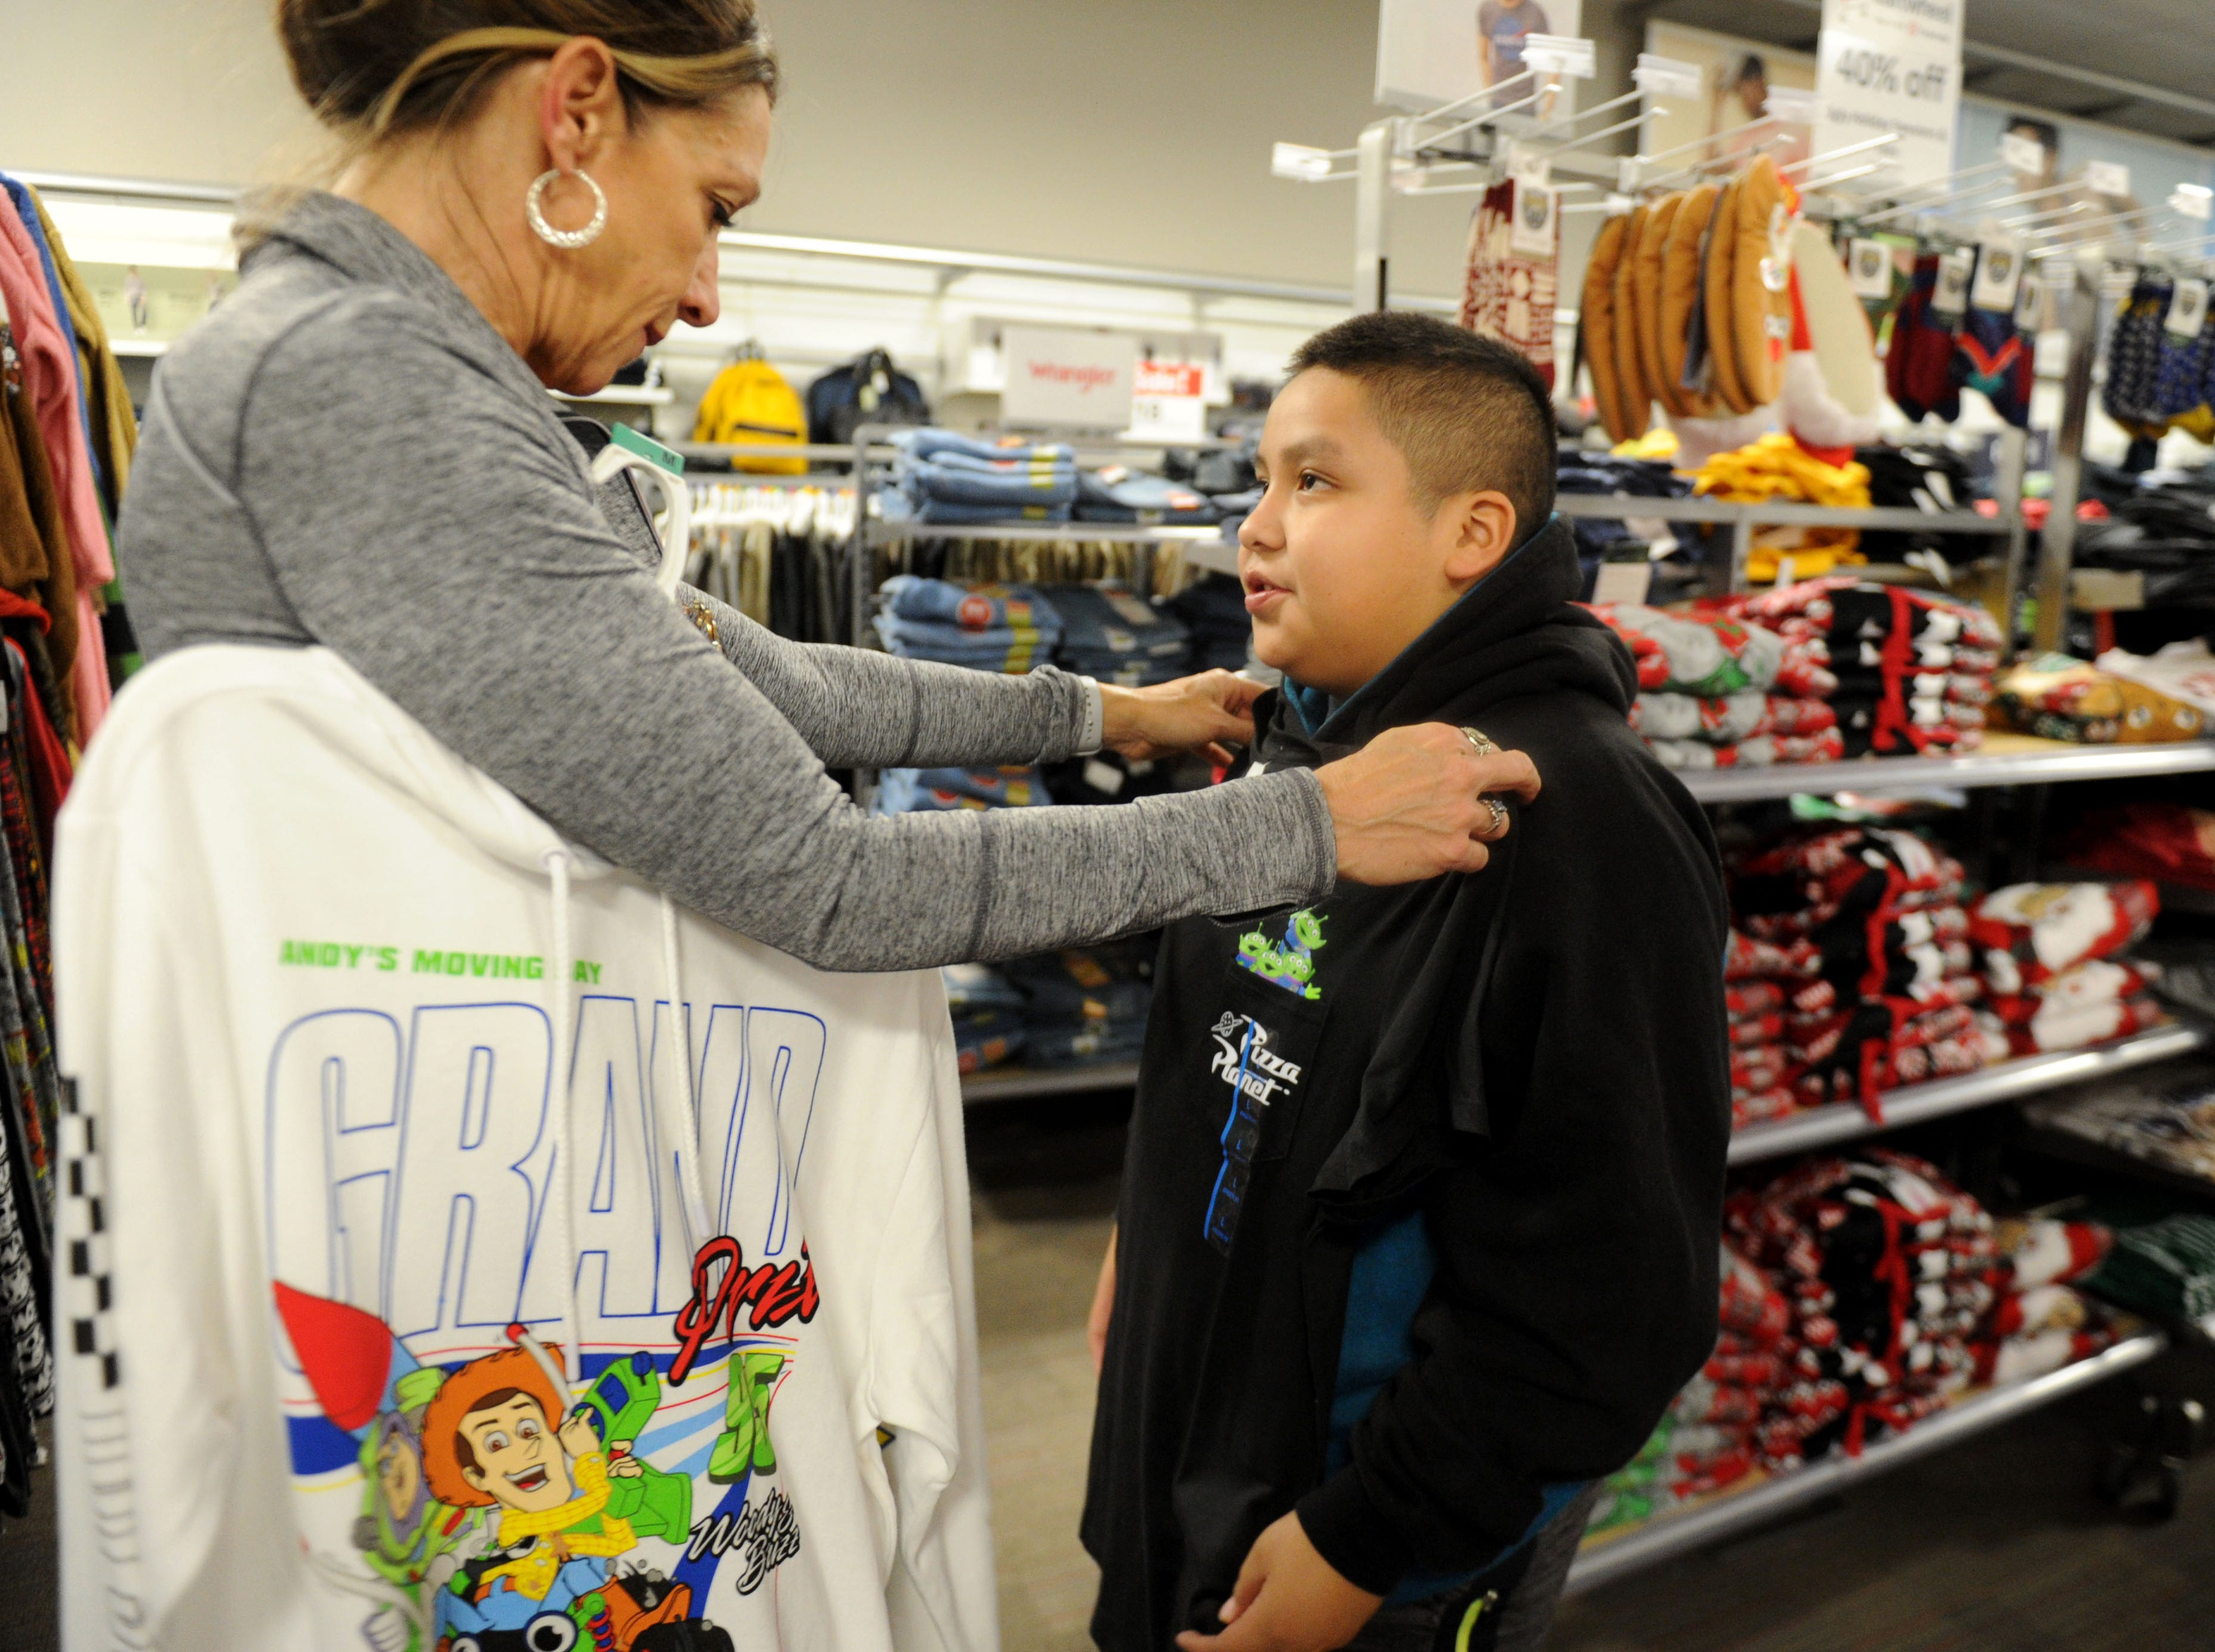 Erin Culbertson, with the Rotary Club of Westlake Village, helps Roberto Aldana shop for Christmas gifts for him and his family. The club hosted a shopping spree at Target for 36 members of the Boys & Girls Club. The children, each with $110 to spend, were paired with 36 volunteers, and they also got two $10 gift cards so they could buy gifts for someone else.